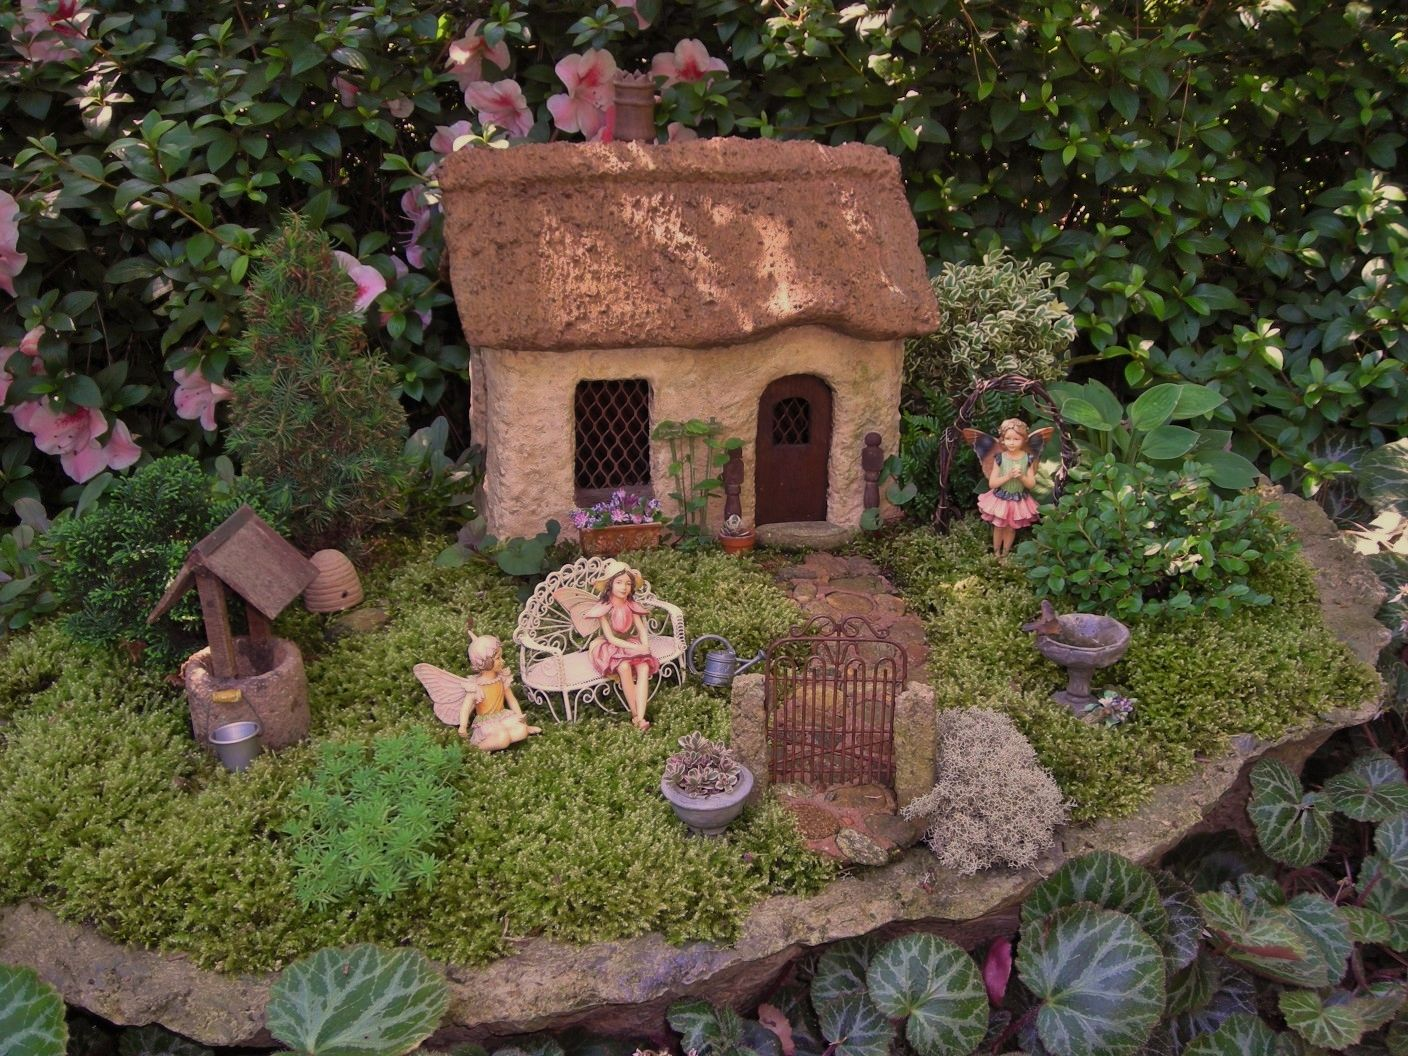 My Cotswold Fairy Garden, notice the Chimney pot on the roof ...